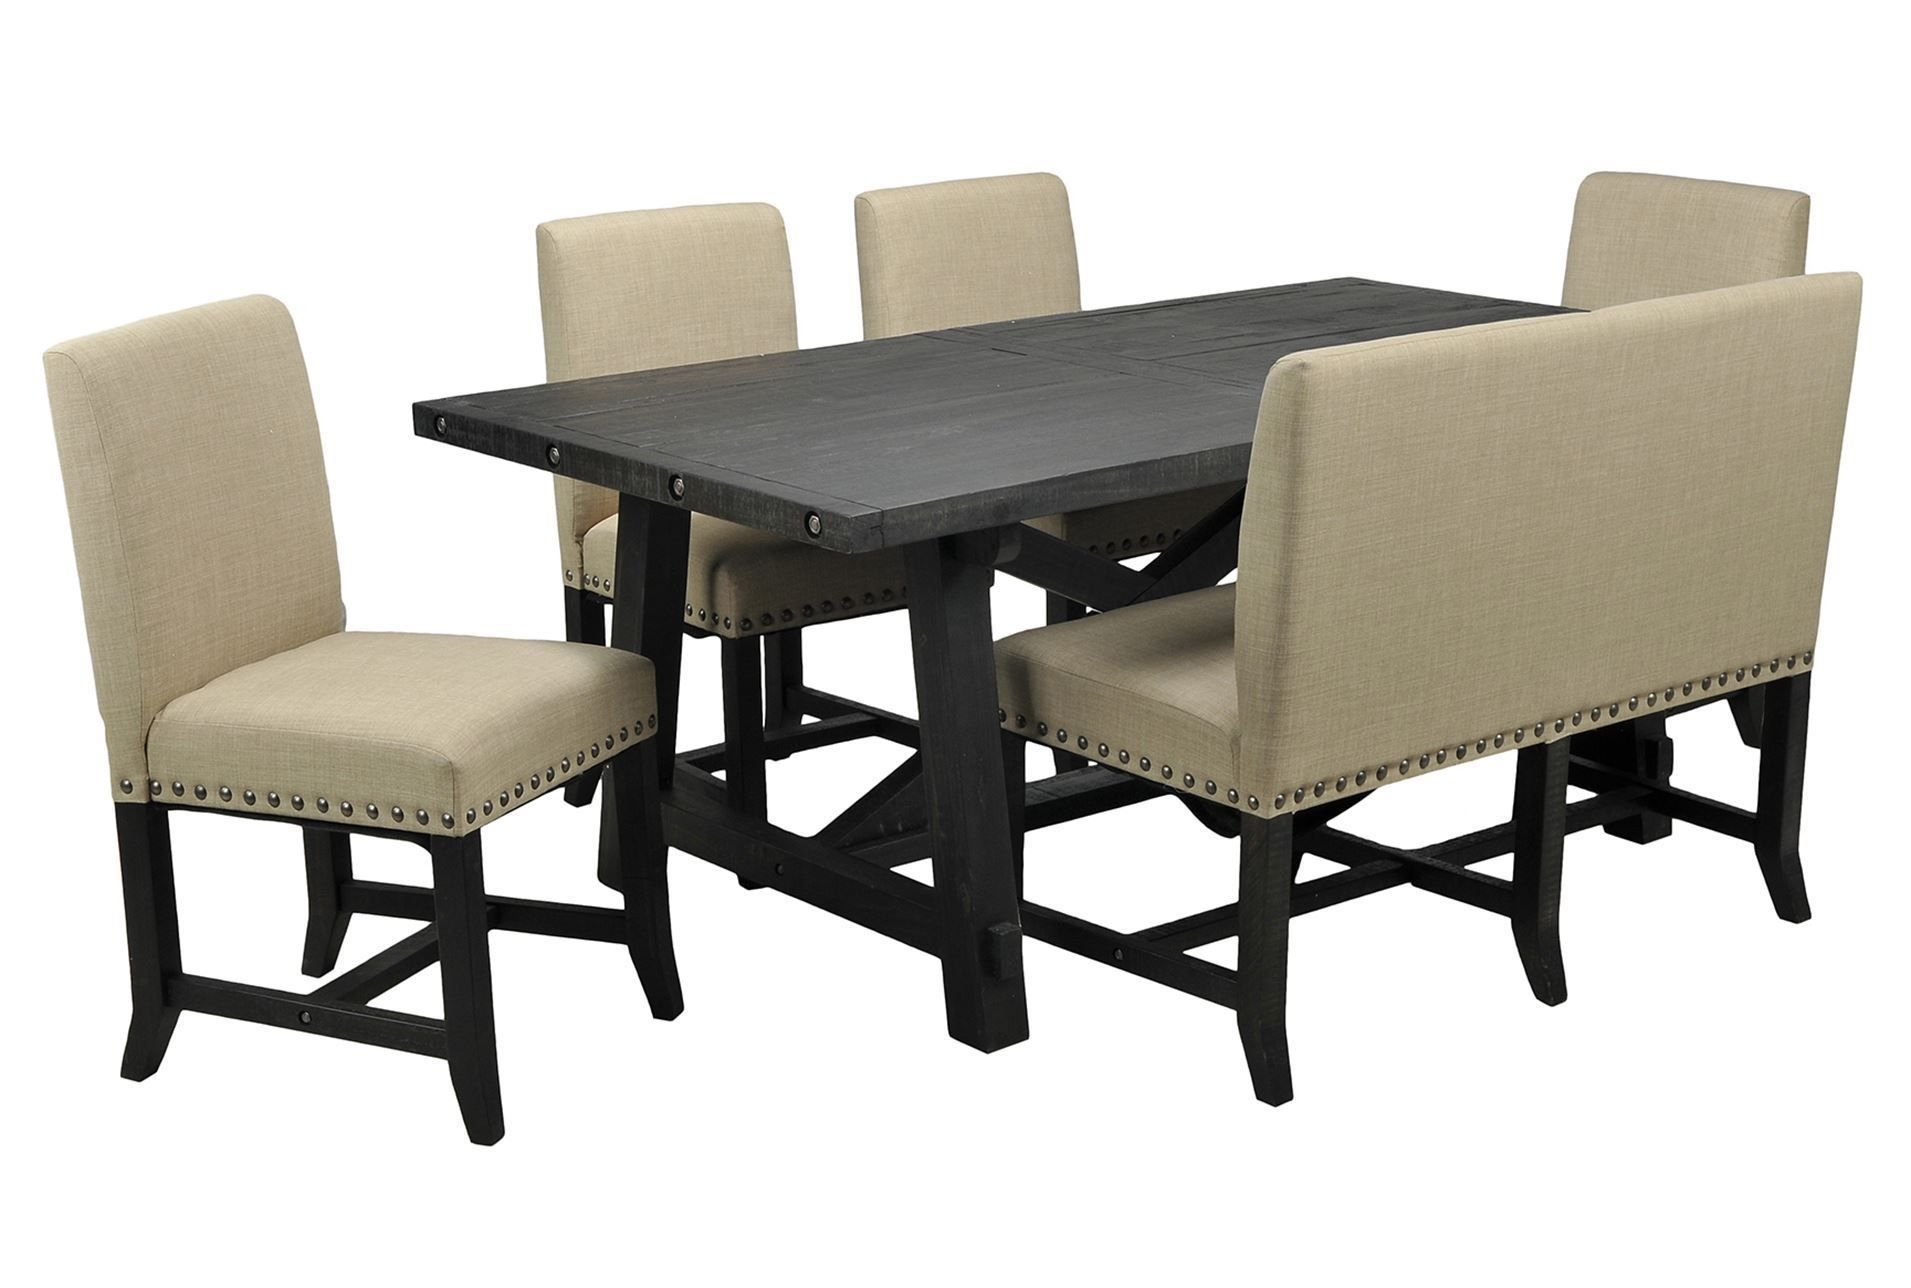 Jaxon 6 Piece Rectangle Dining Set W/bench & Uph Chairs | Home Decor Inside Latest Jaxon 6 Piece Rectangle Dining Sets With Bench & Wood Chairs (Image 9 of 20)